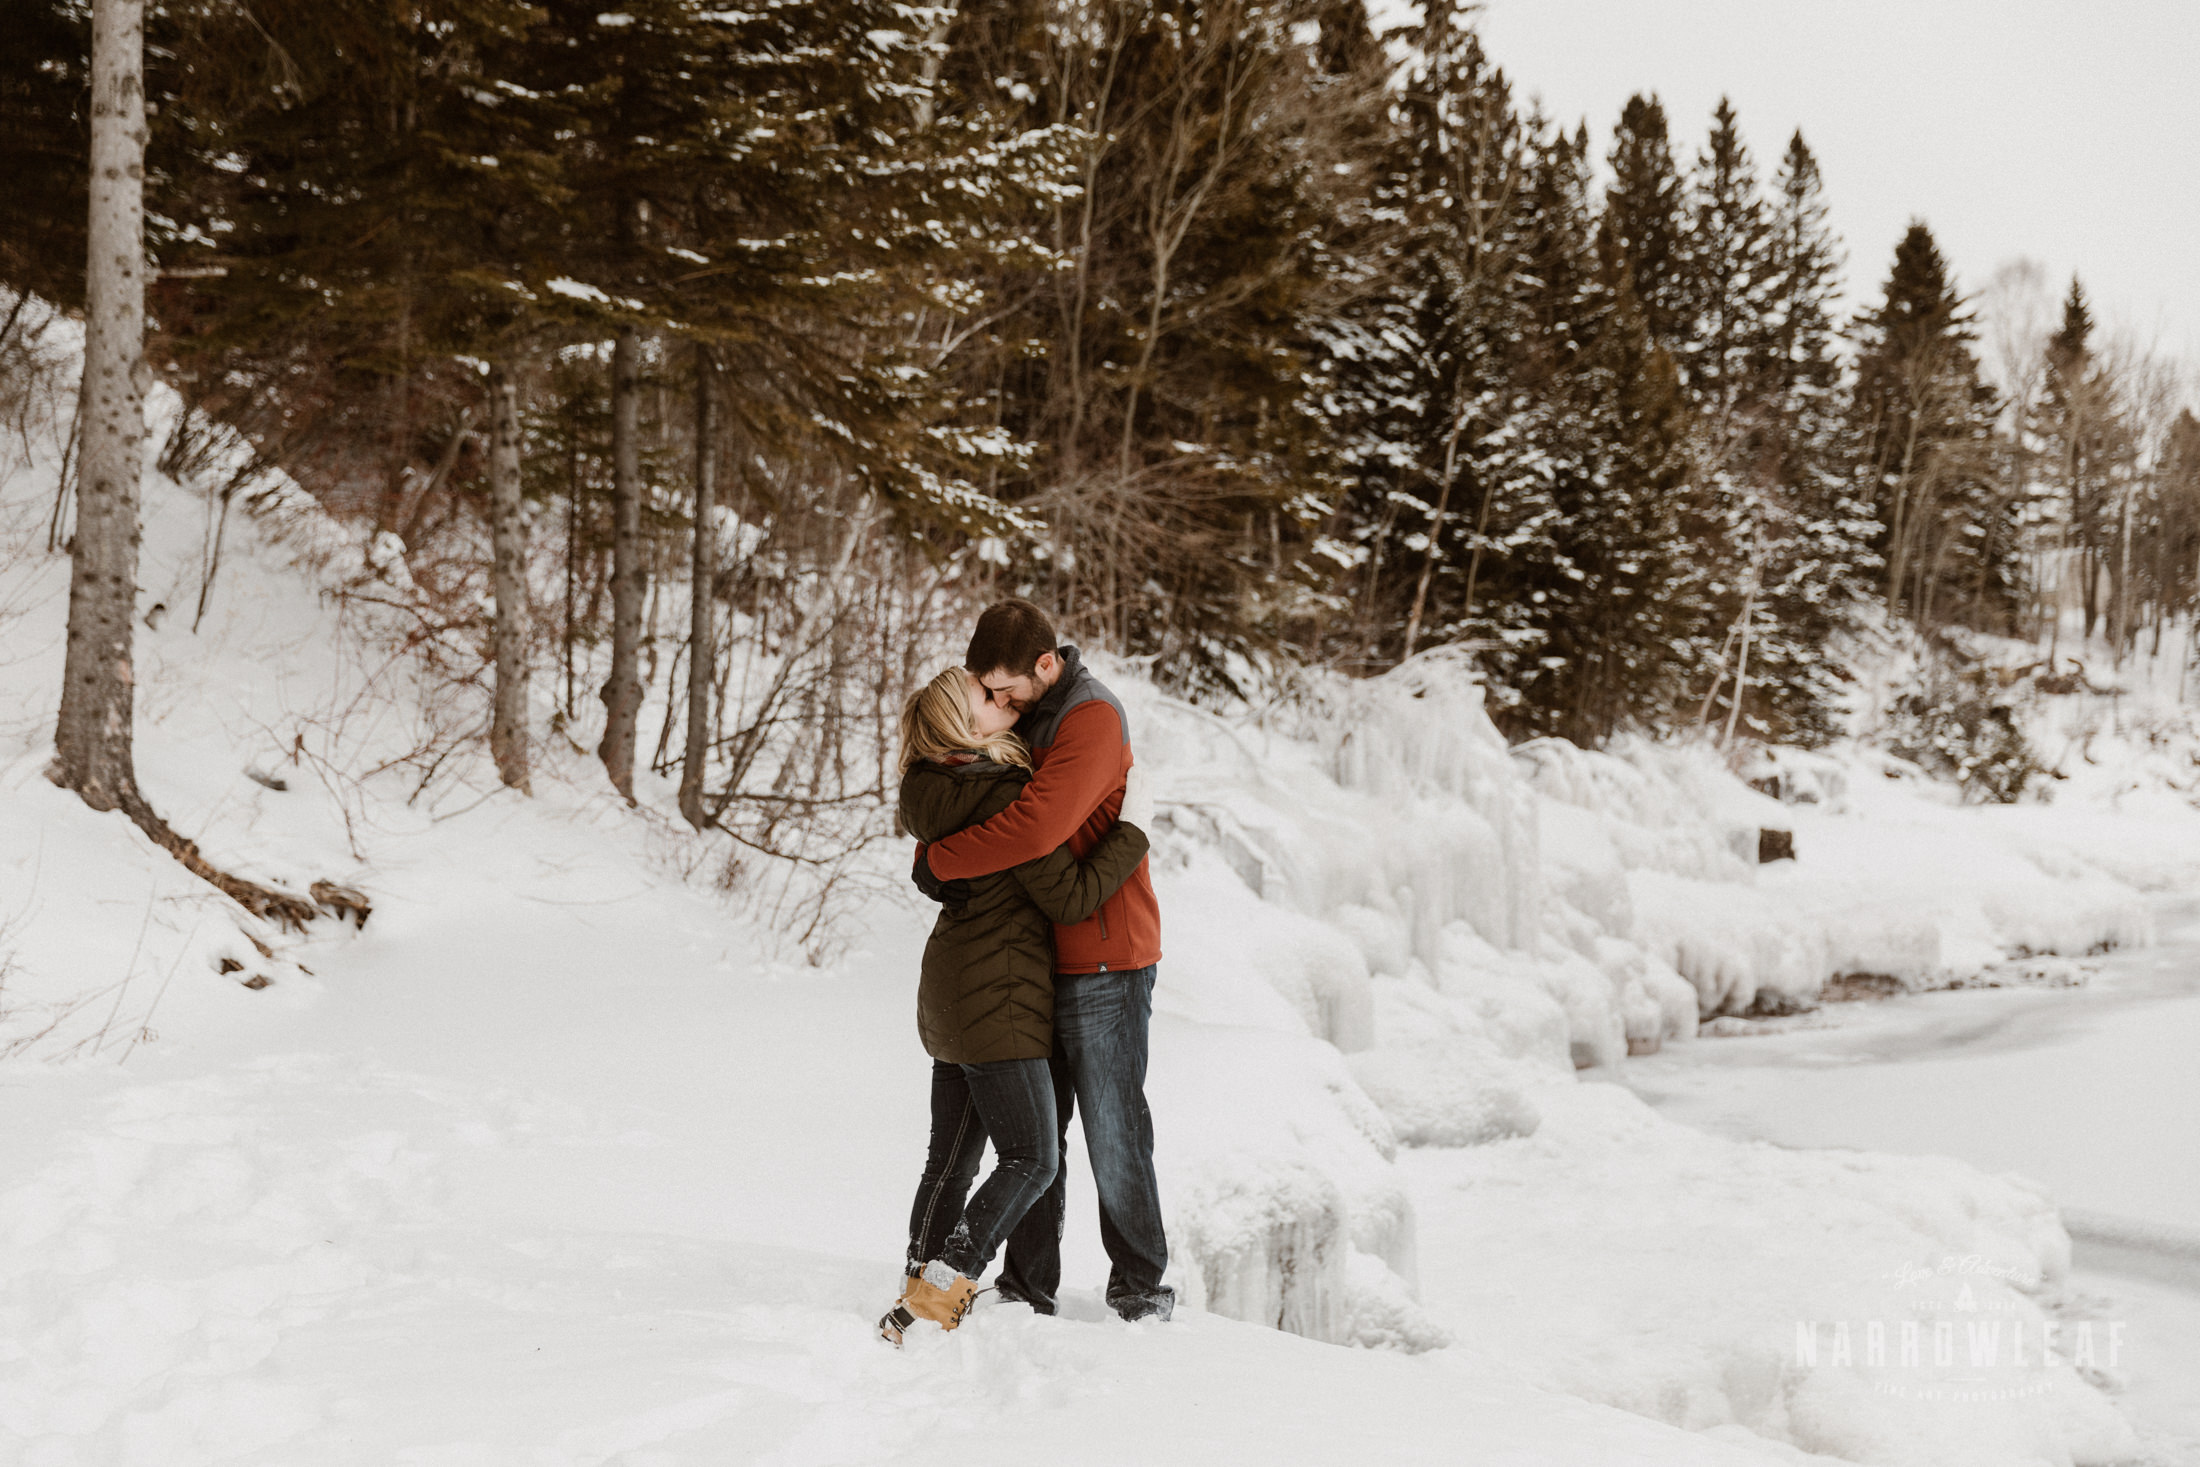 North-Shore-Minnesota-winter-Engagement-photos-Narrowleaf-Adventure-Photography-9303.jpg